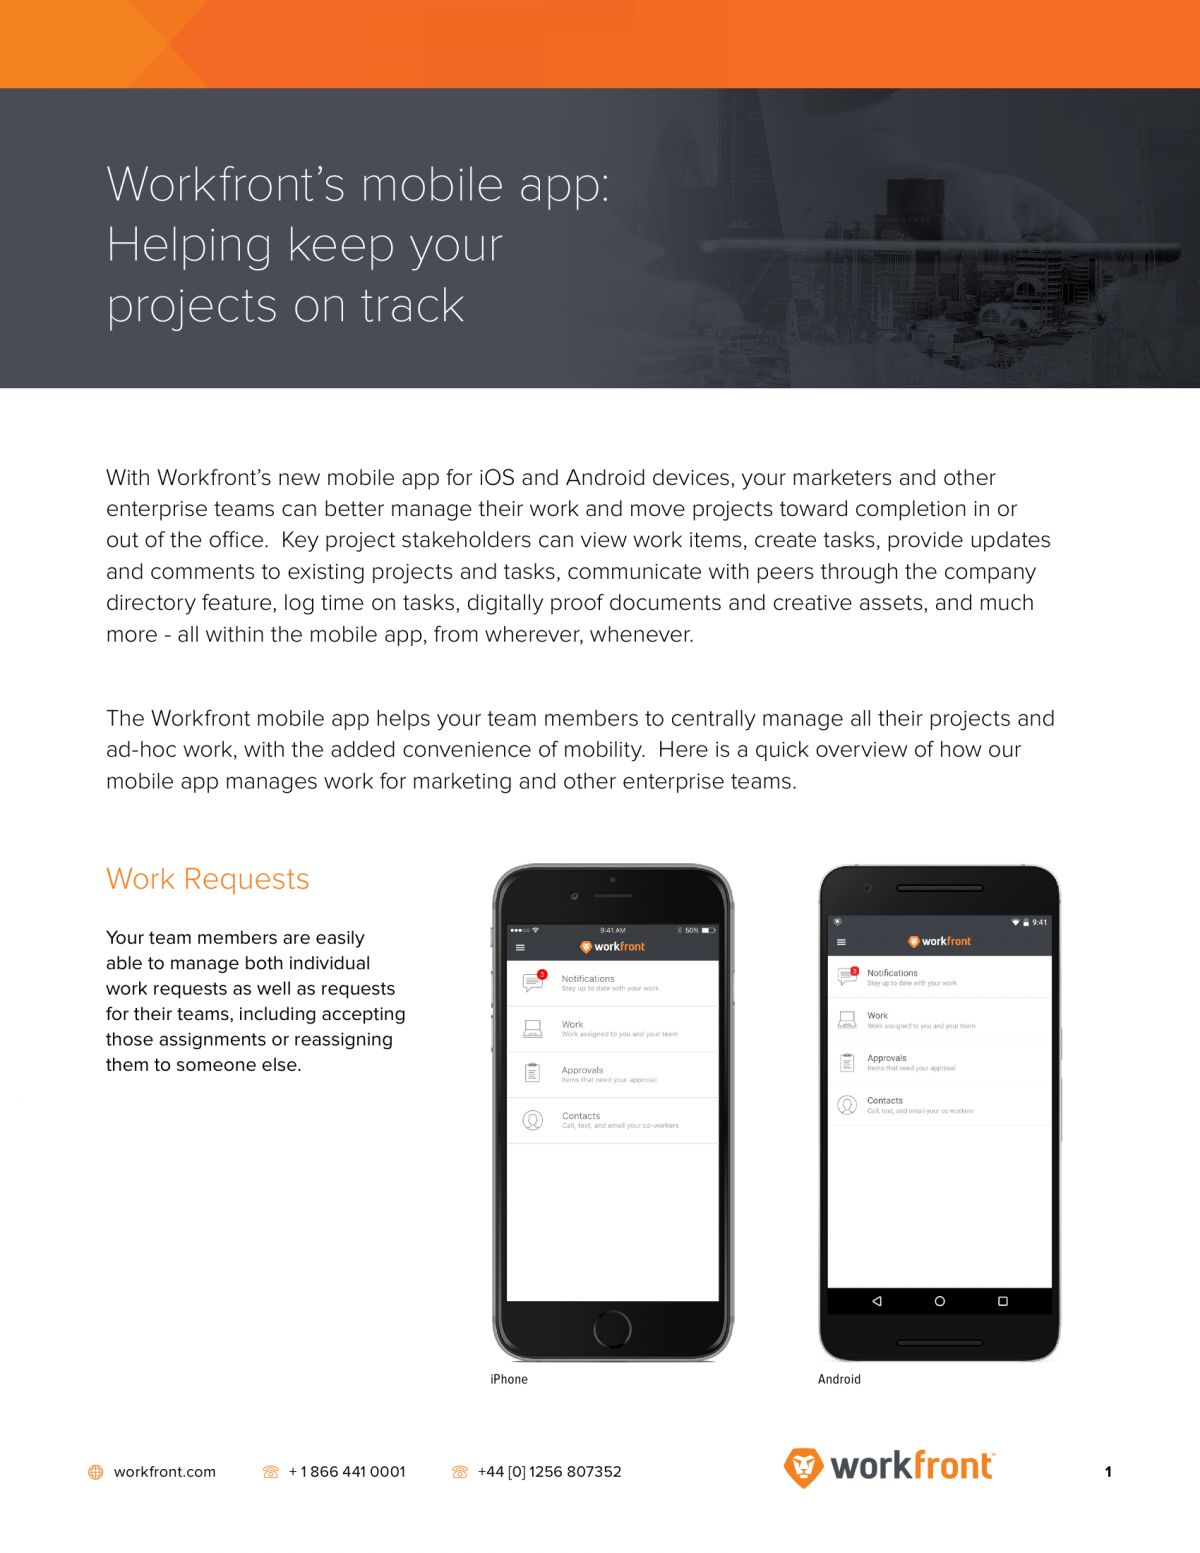 Workfront's mobile app: Devour work chaos while on-the-go